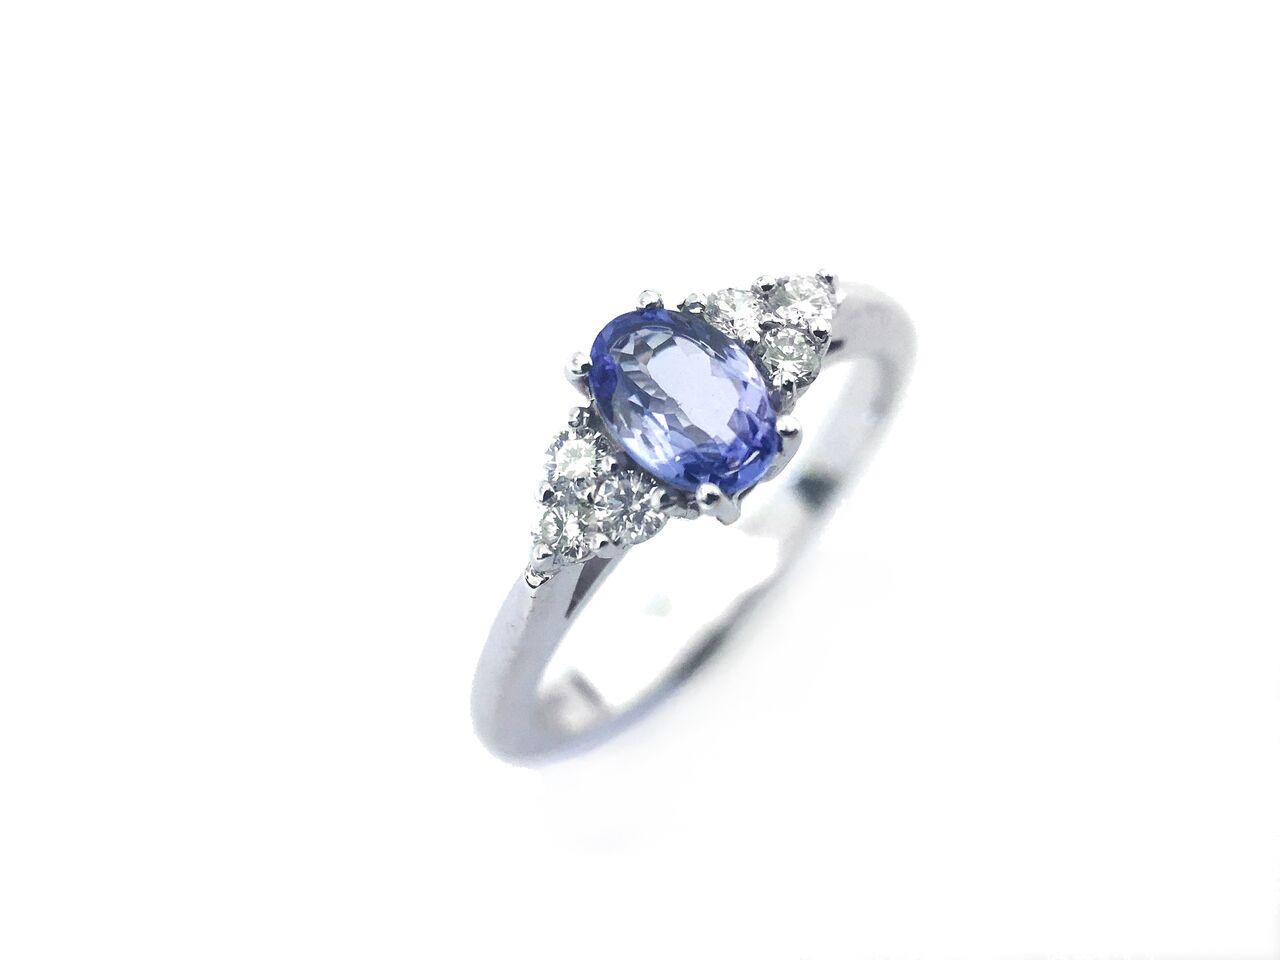 classic infinity jewelry rings ring fine tanzanite from genuine in accessories silver item sterling for women natural jewelrypalace engagement gemstone